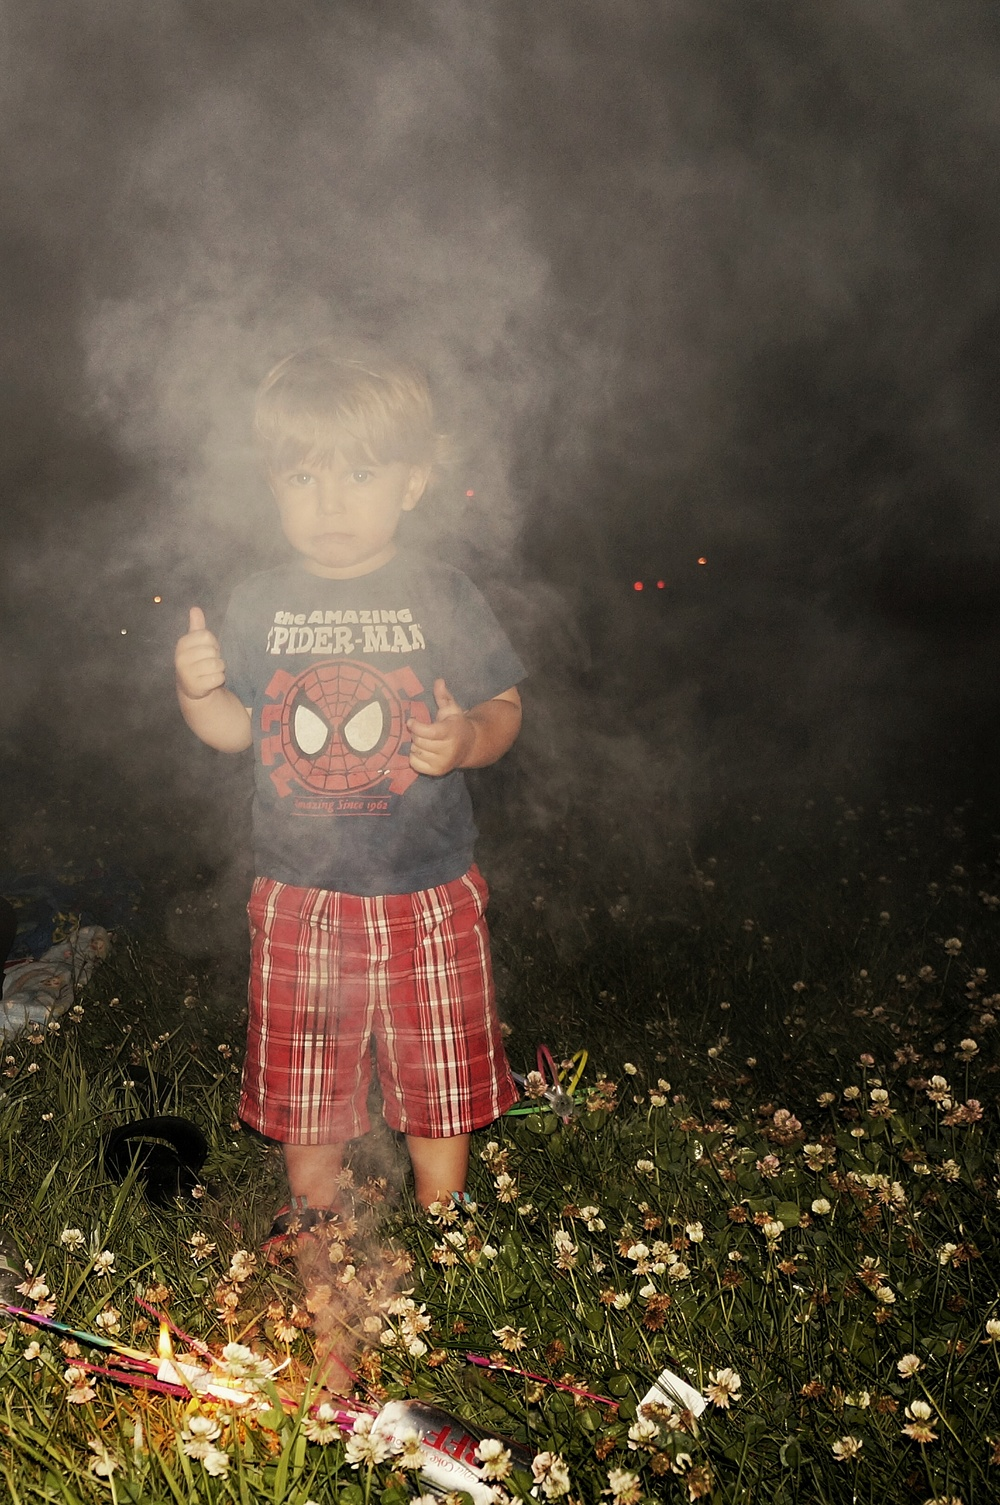 Too young to hold a sparkler :(